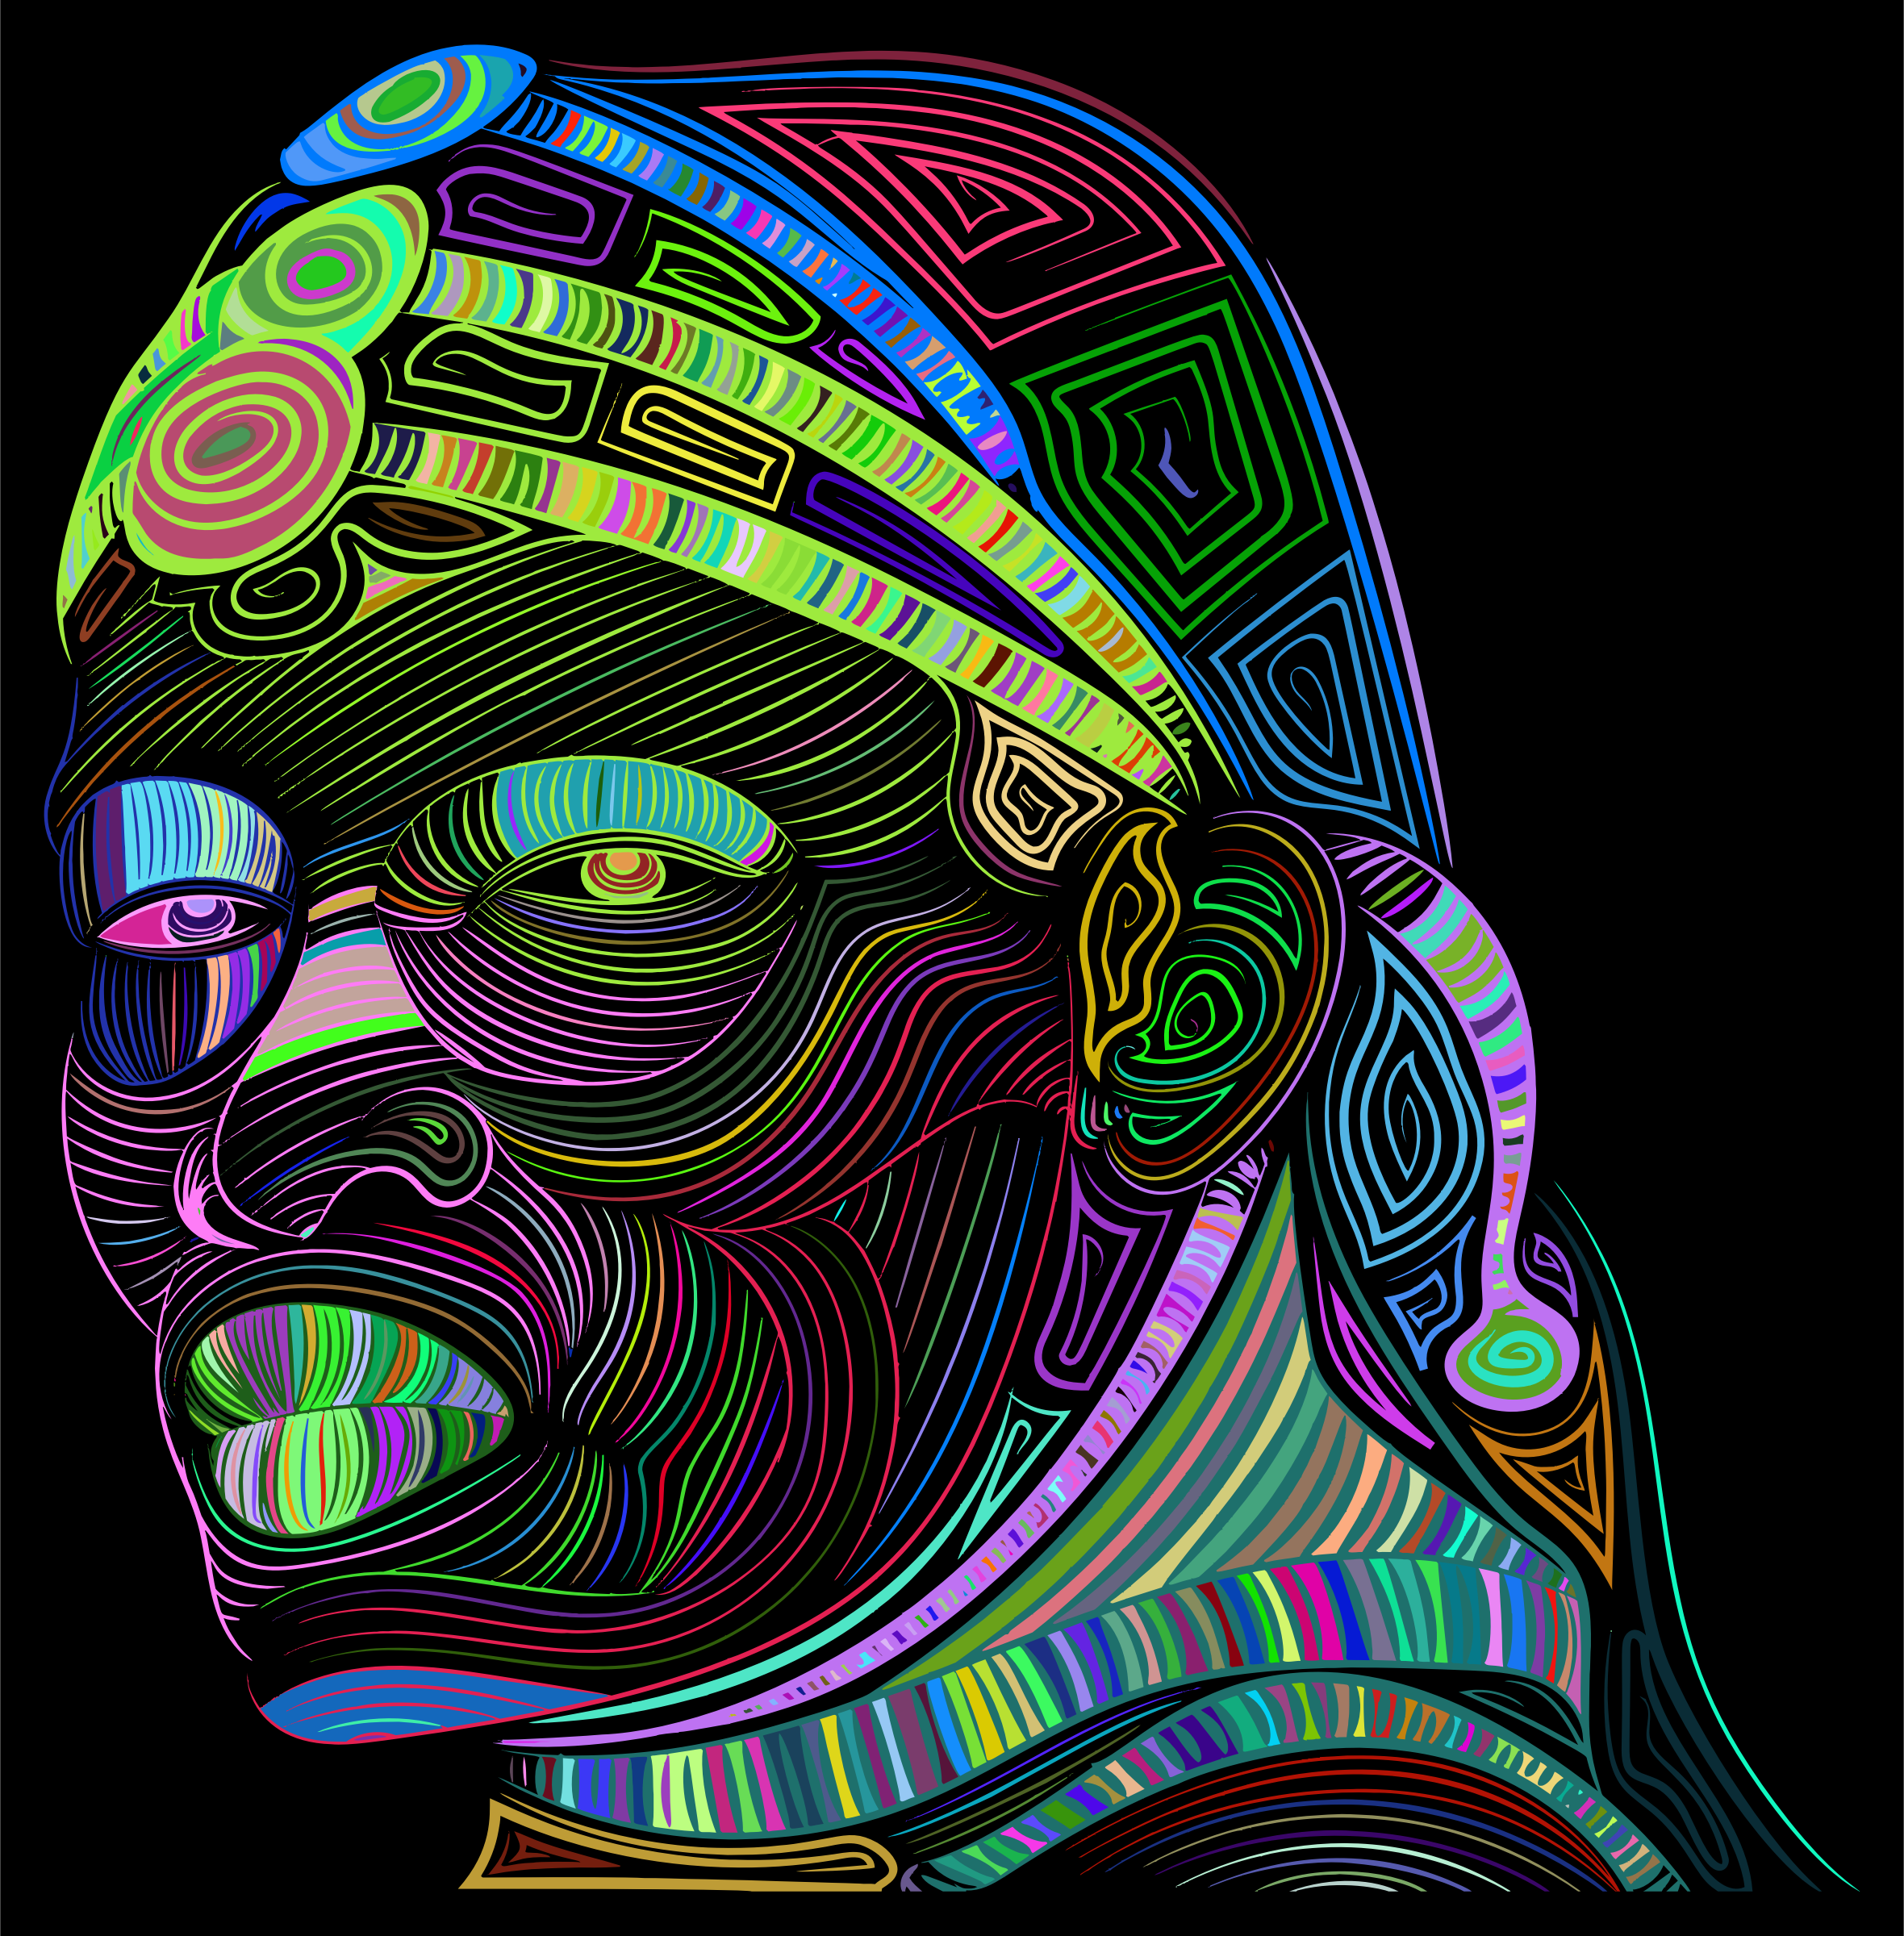 Maasai Man Line Art Prismatic by GDJ